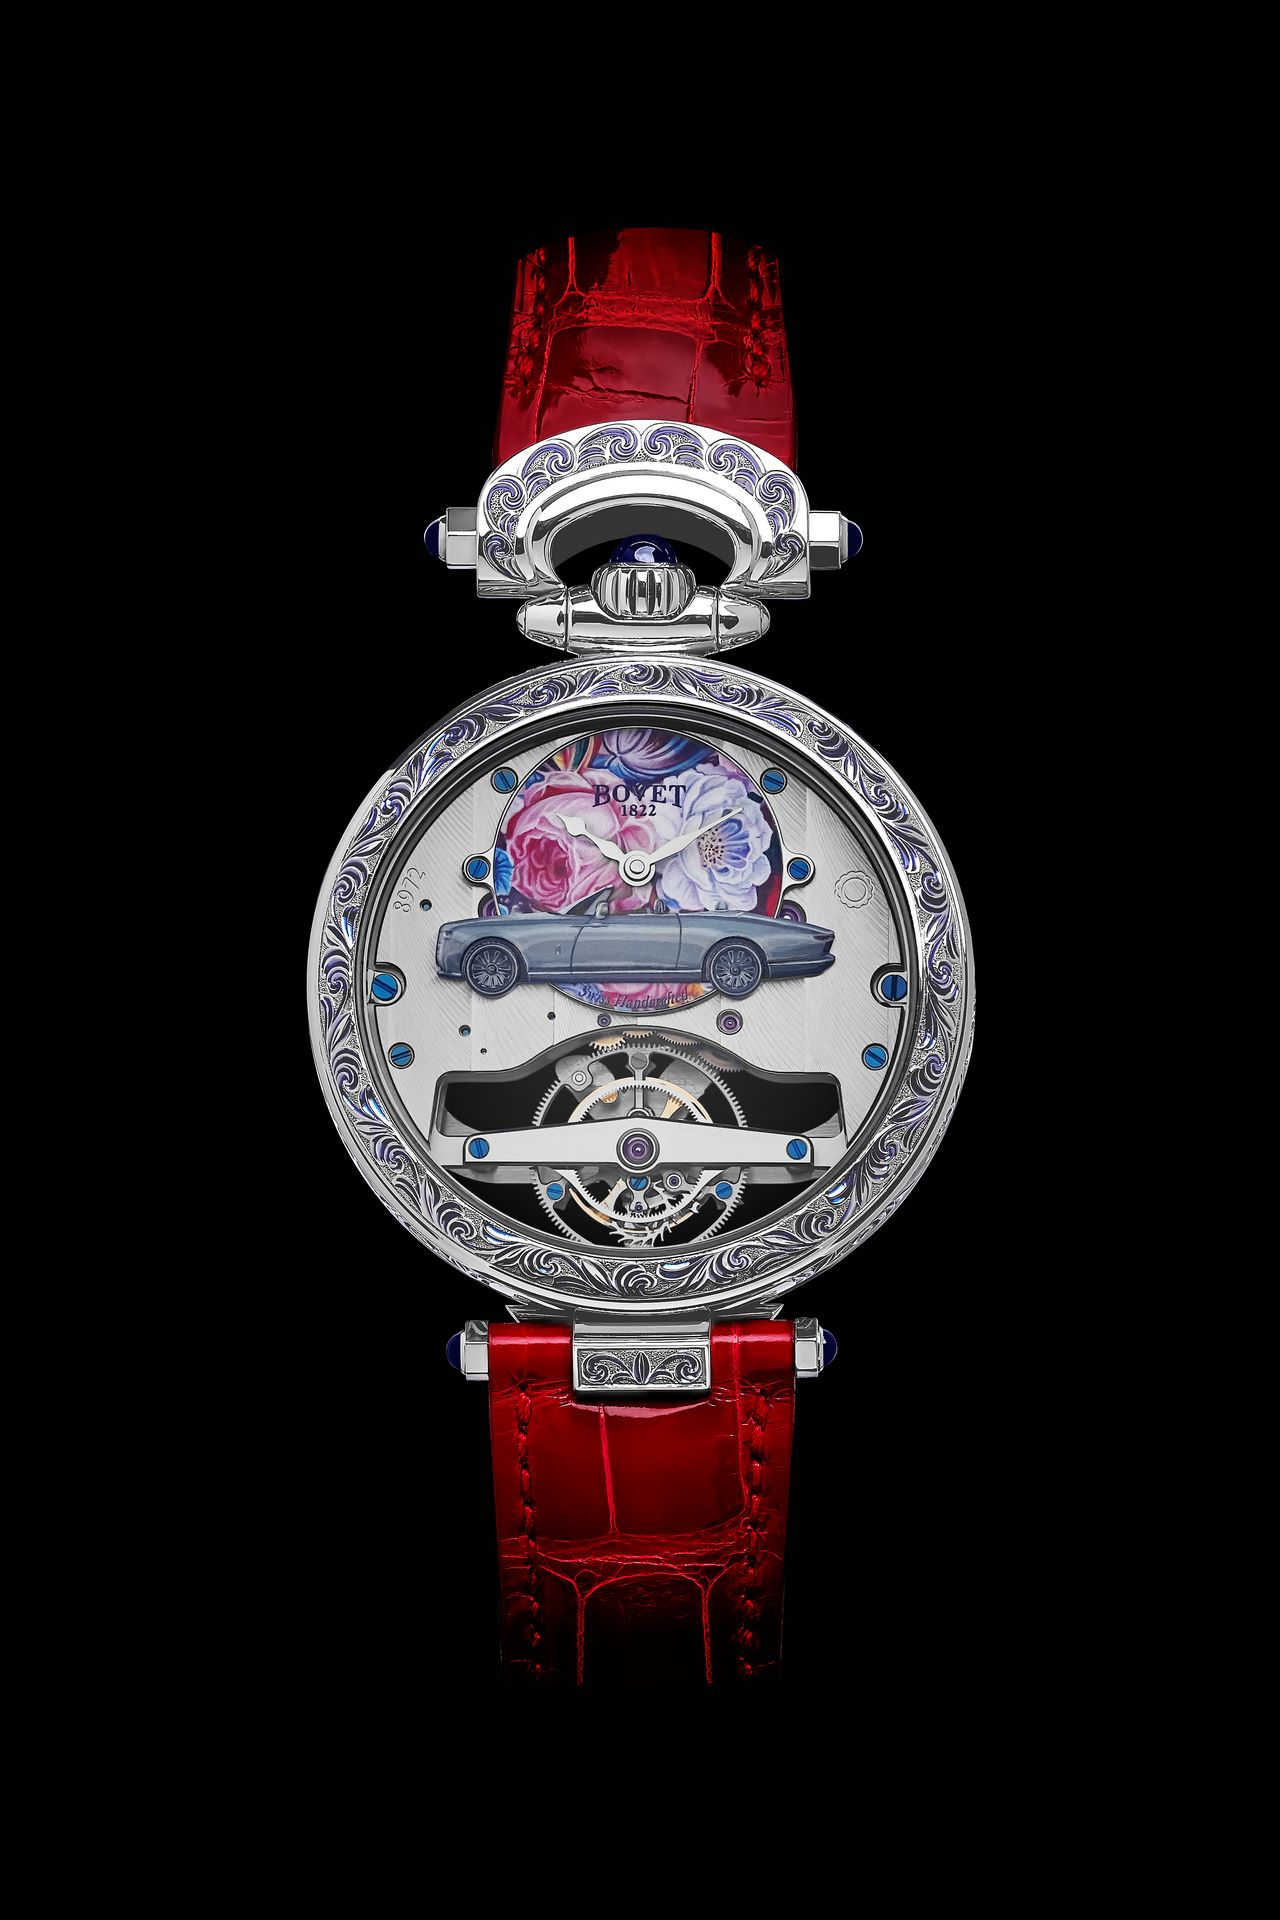 Rolls-Royce-Boat-Tail-Bovet-1822-Watches-3